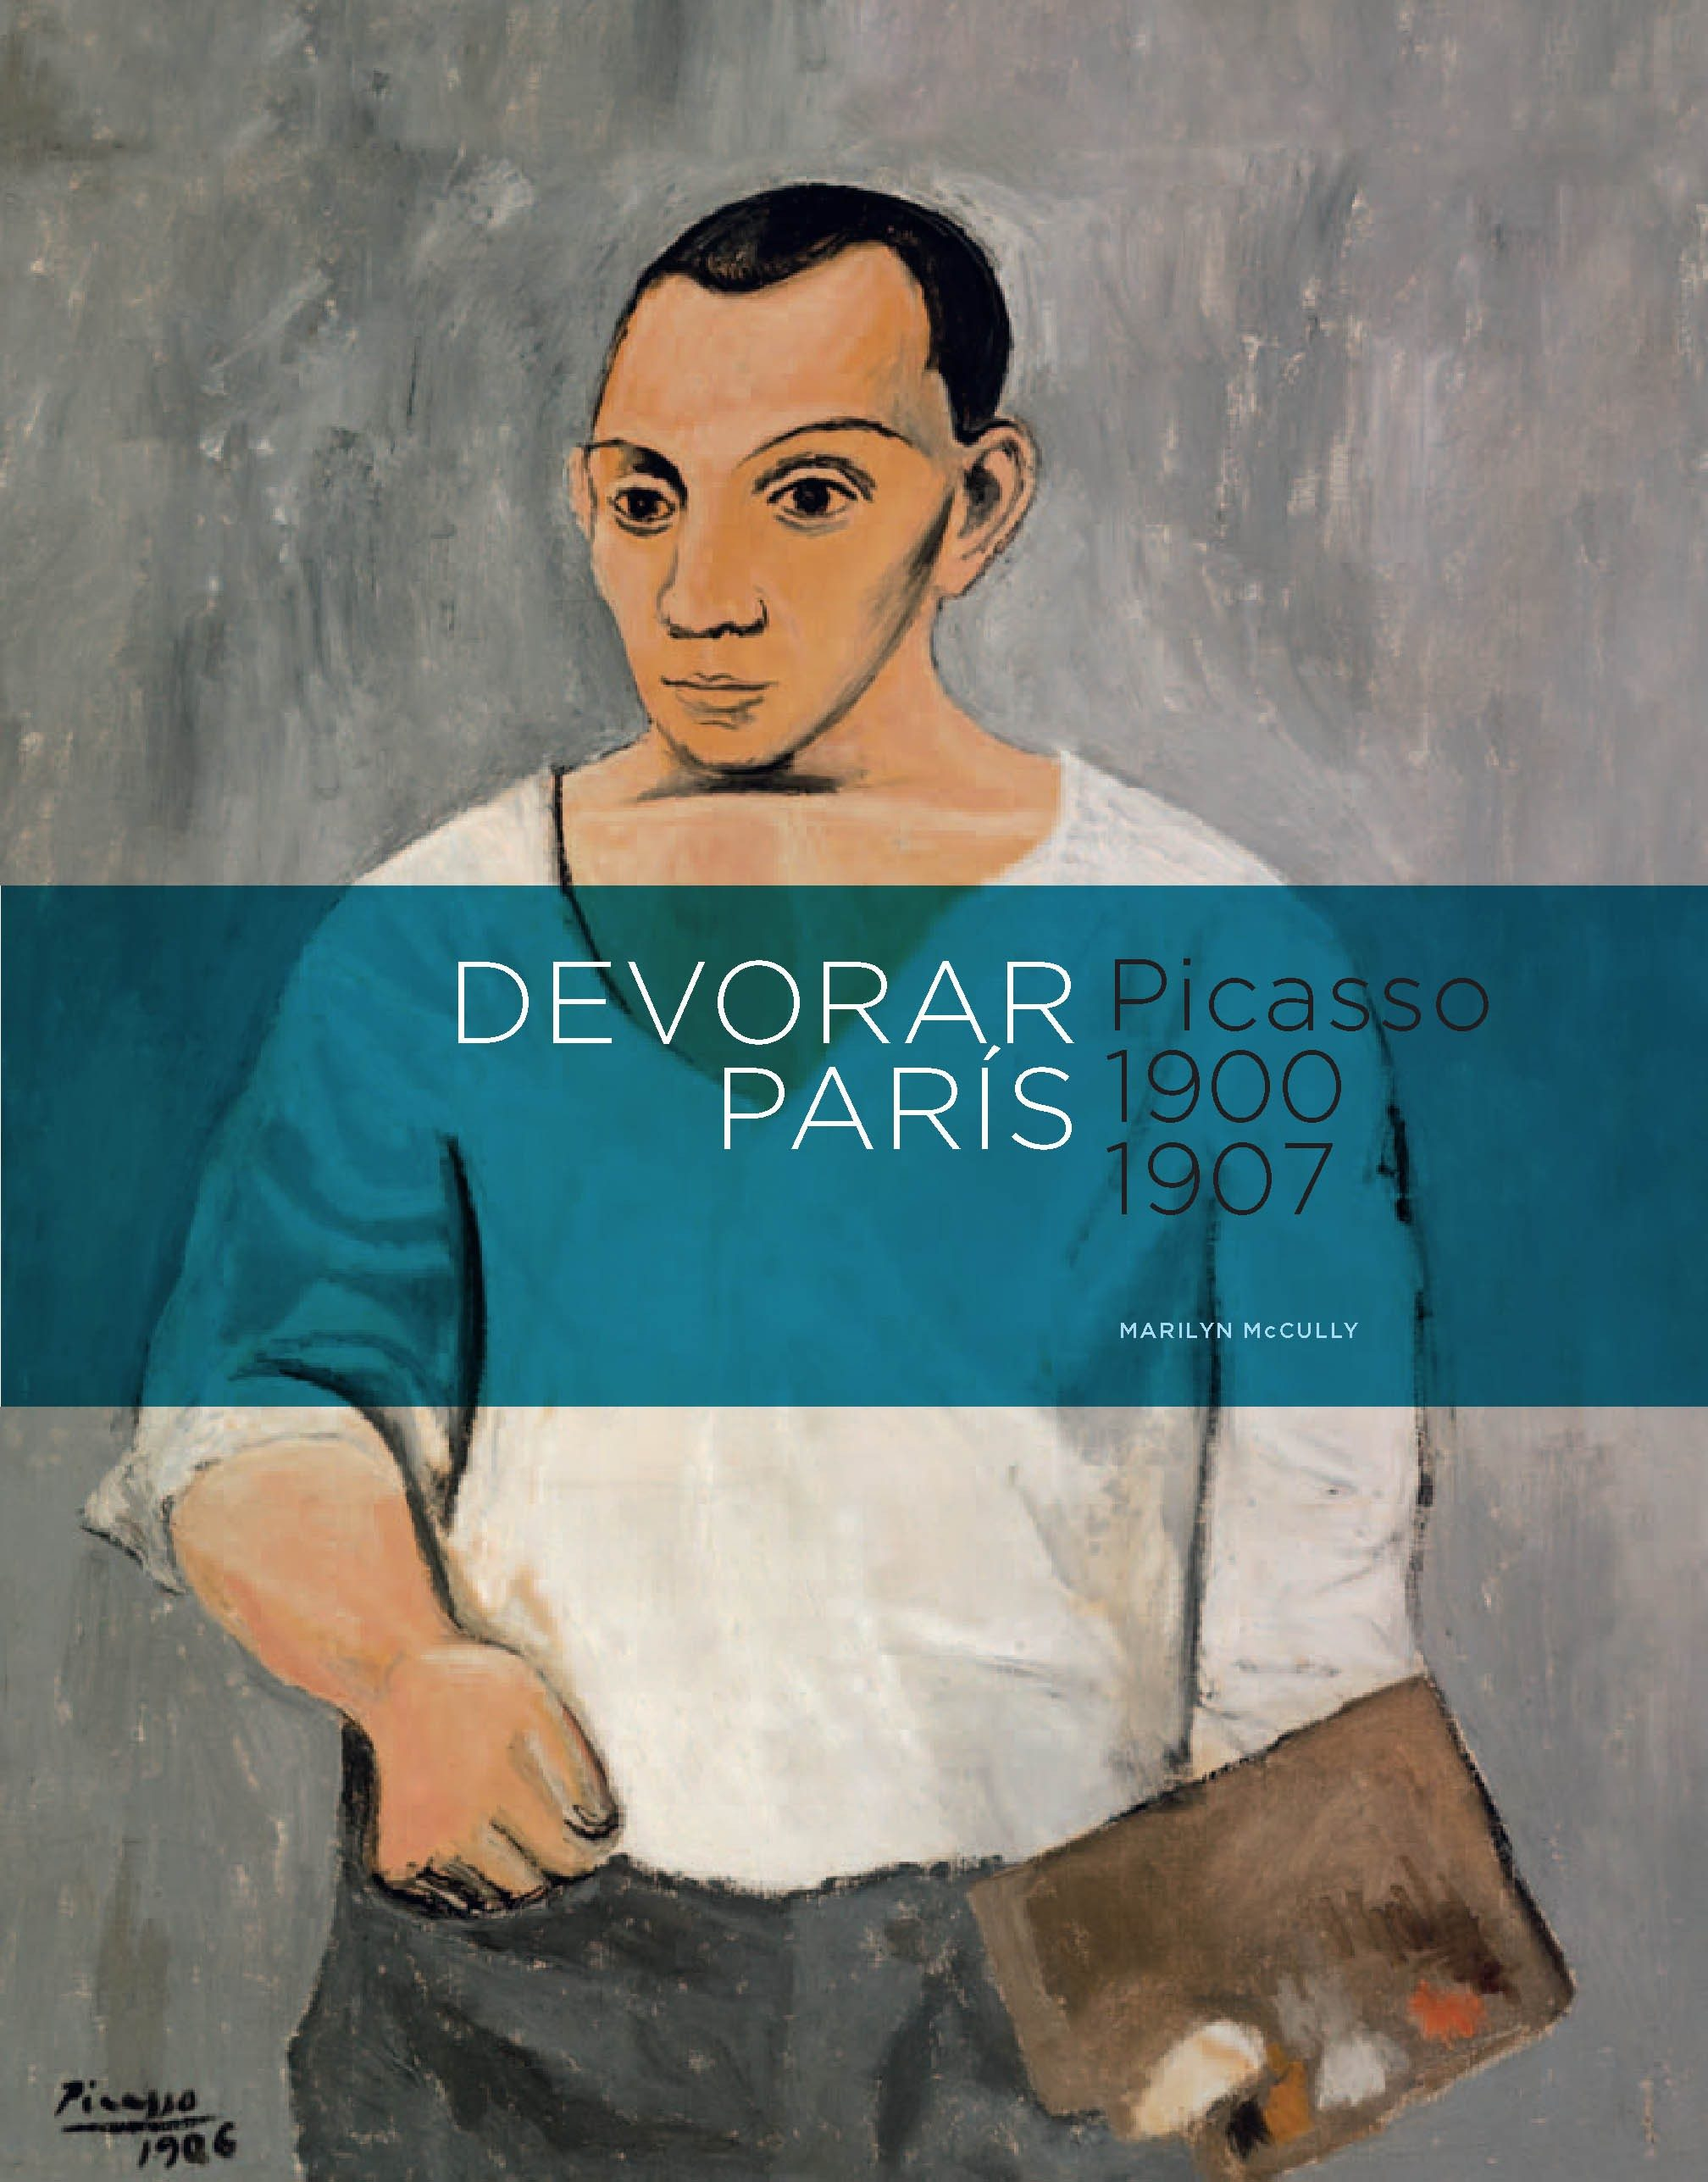 Devorar Paris: Picasso (1900-1907) - Mccully Marilyn